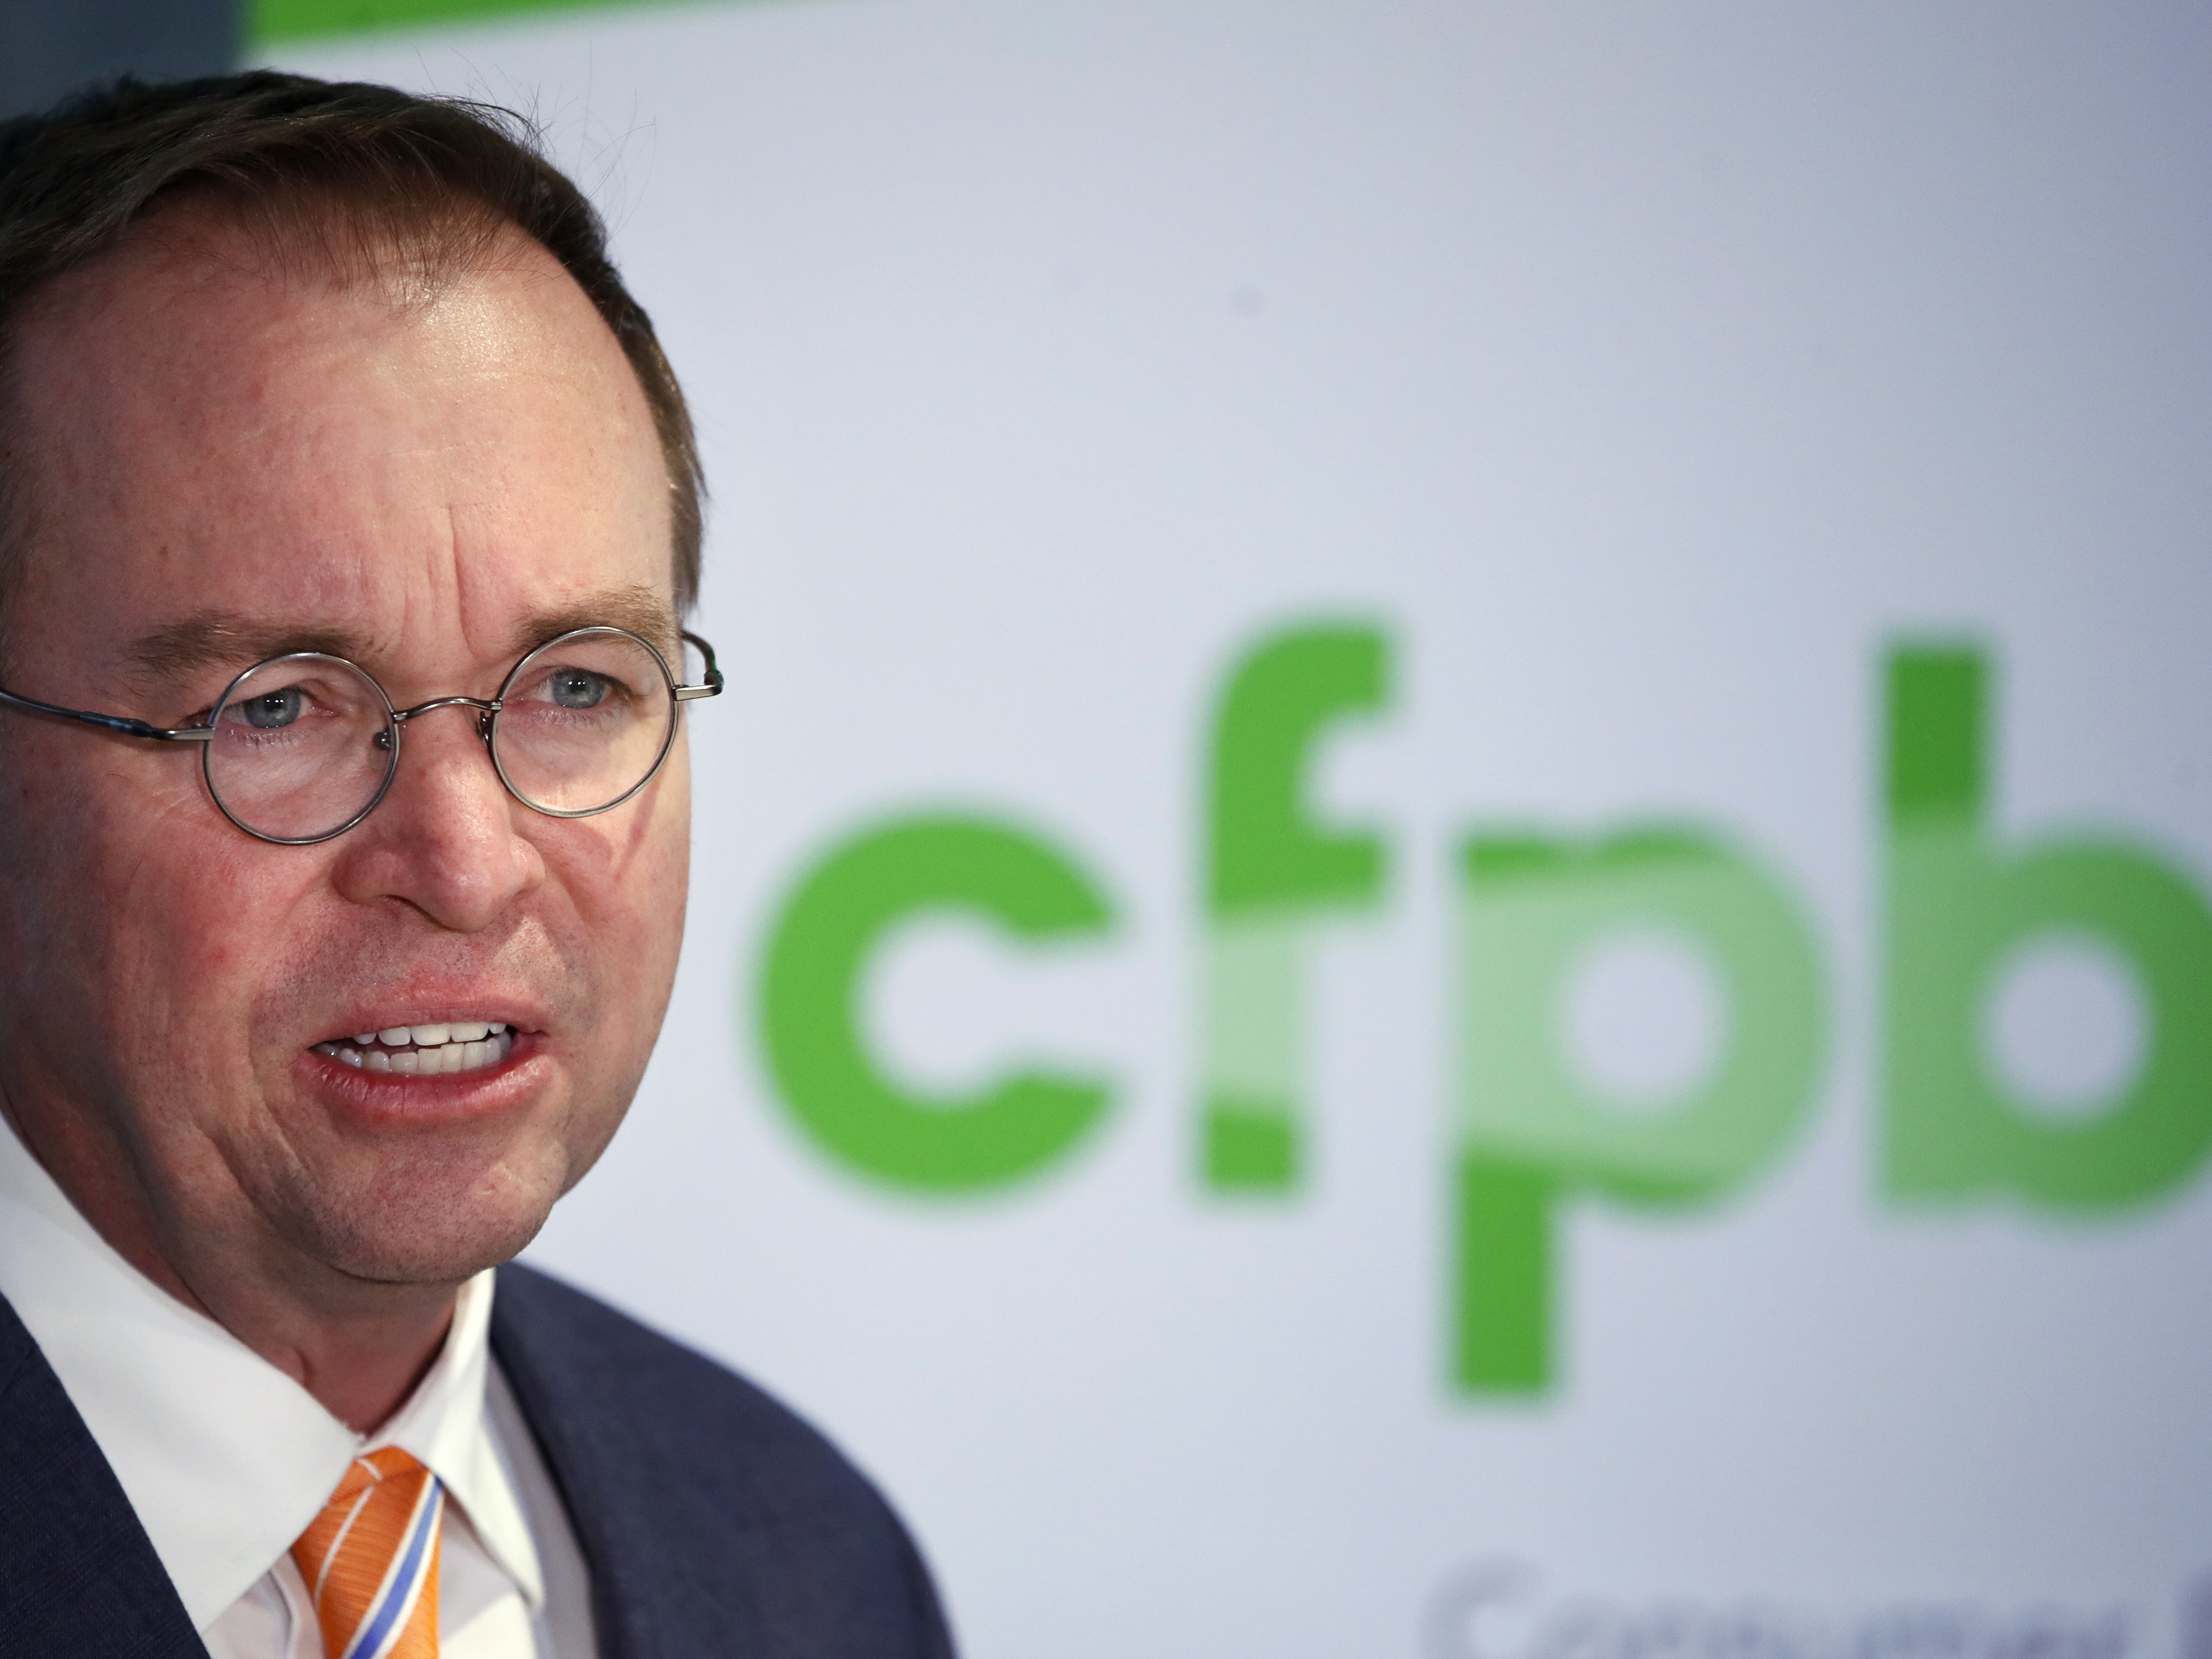 Appeals court finds CFPB structure constitutional